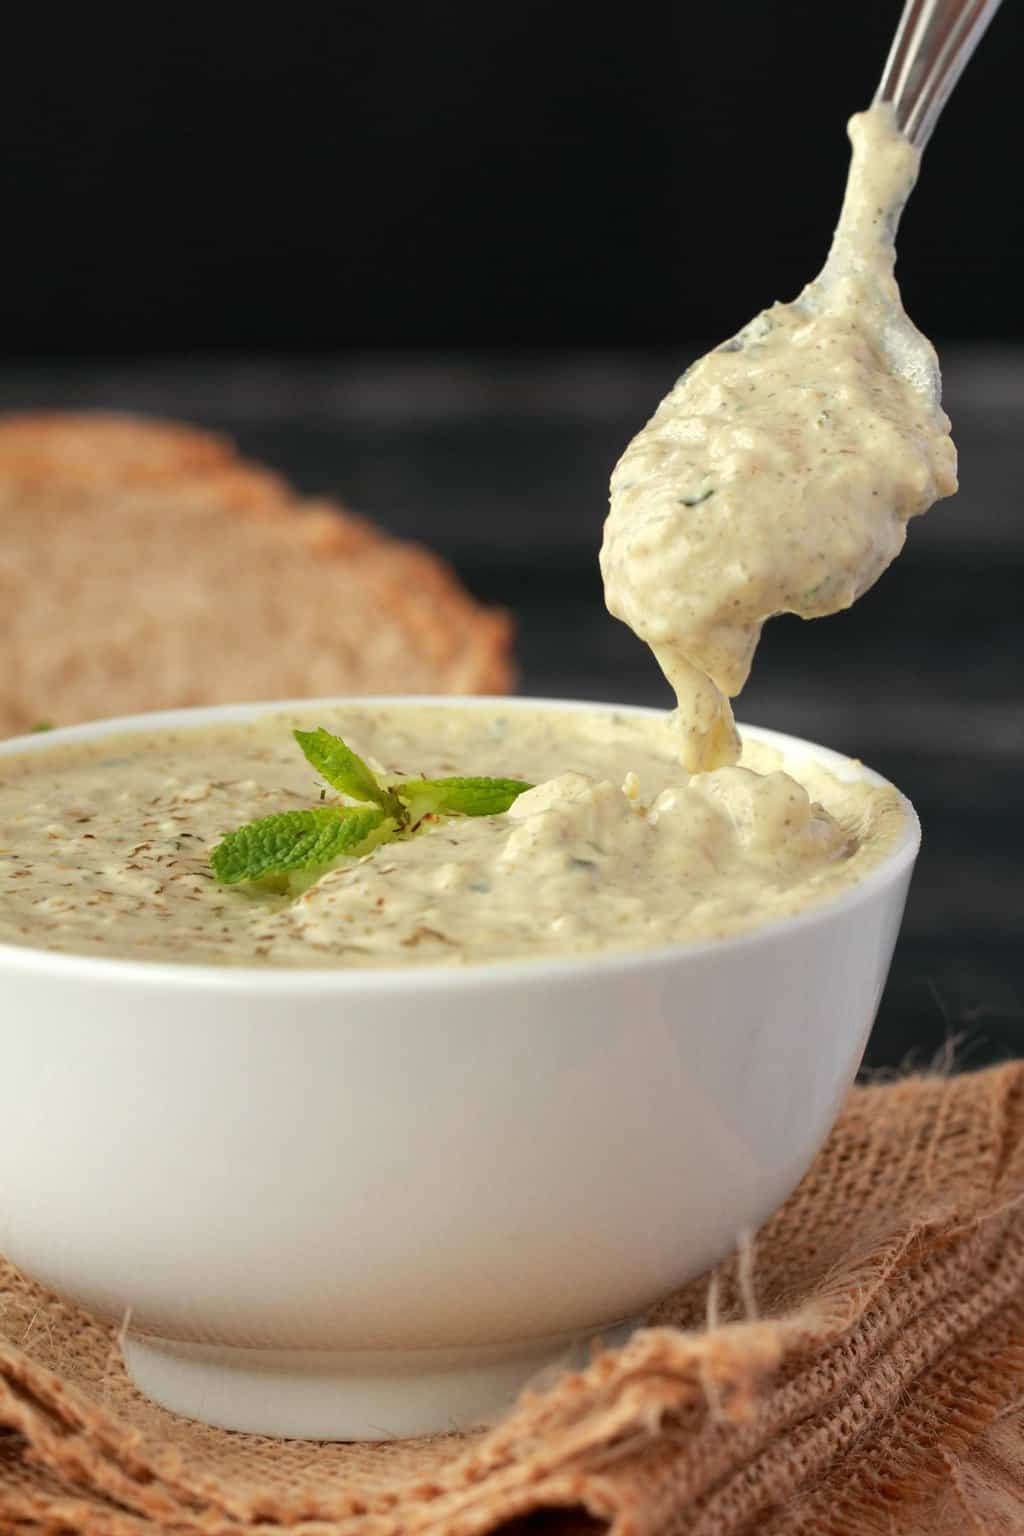 A spoonful of vegan tzatziki over a white bowl filled with tzatziki, sliced bread in the background.